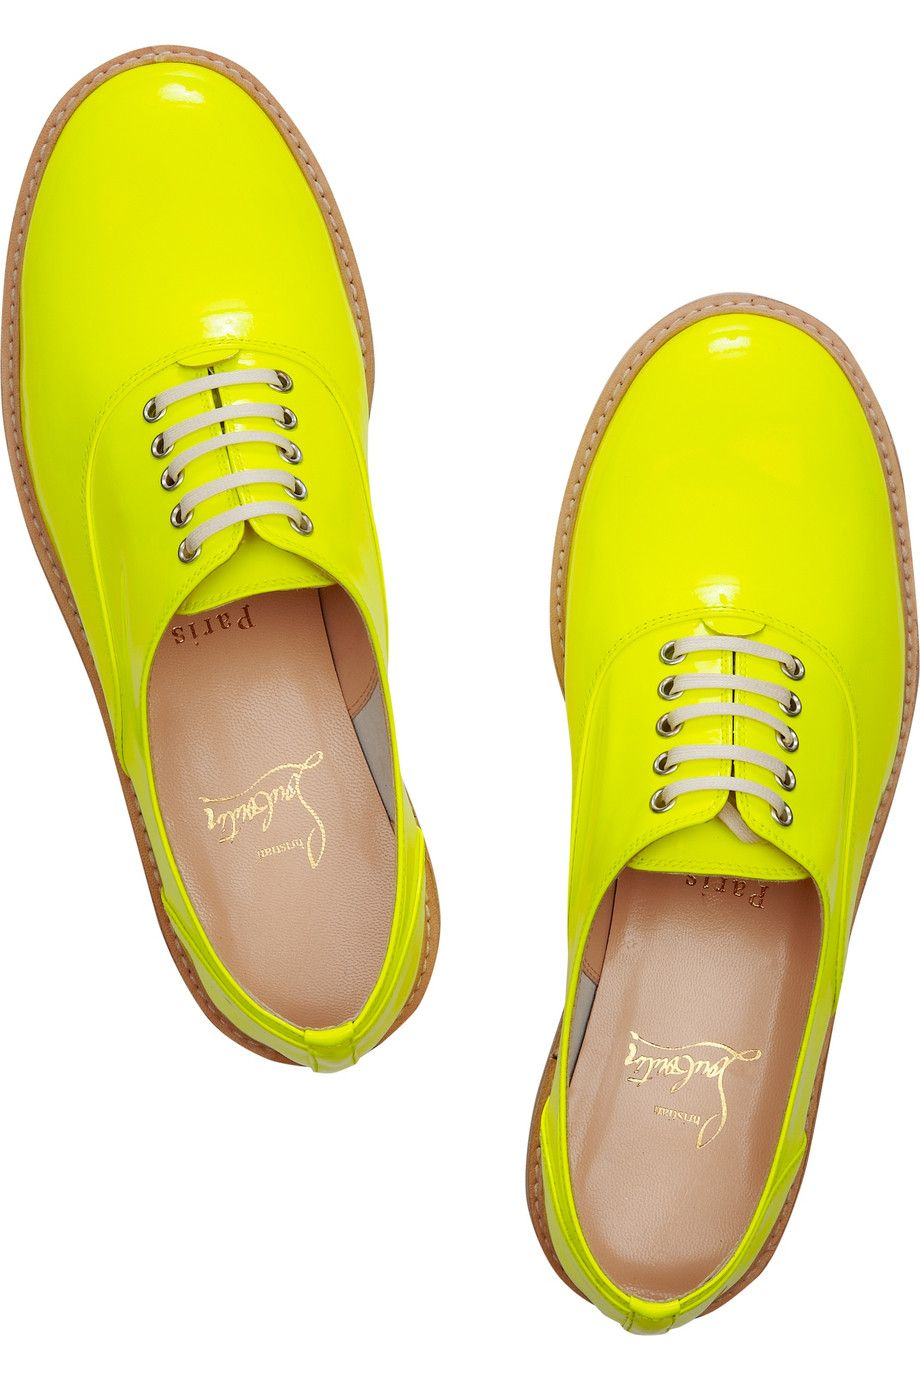 Christian Louboutin Oxford amarillo